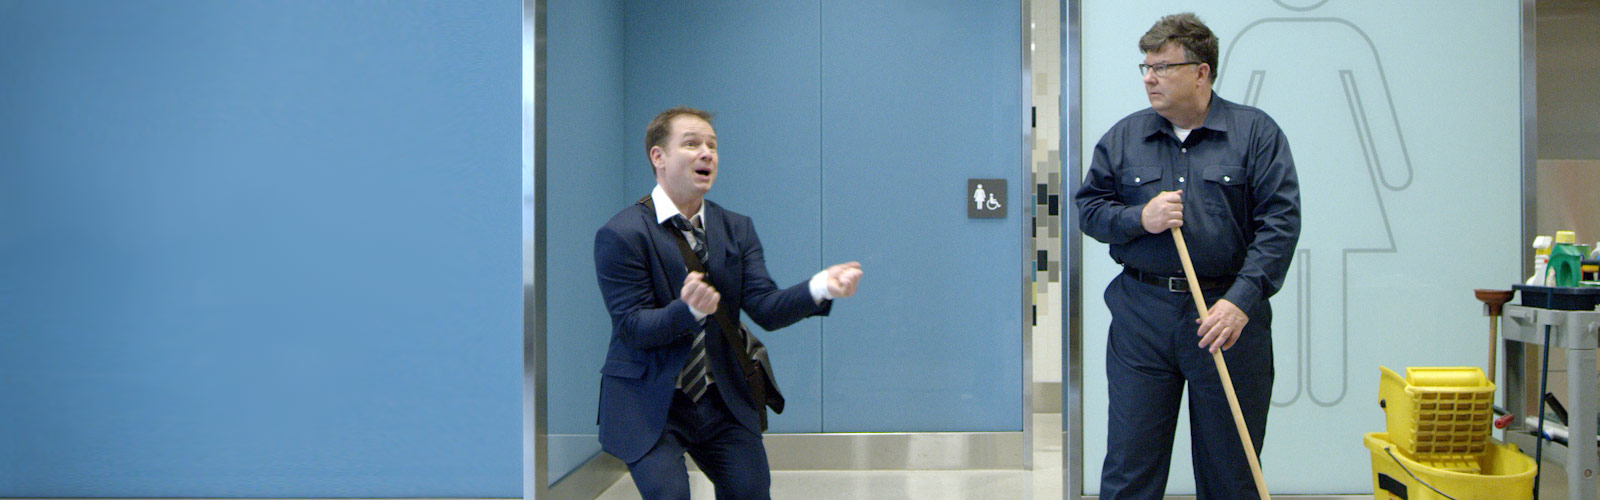 business traveler dancing in front of a custodian in an airport.